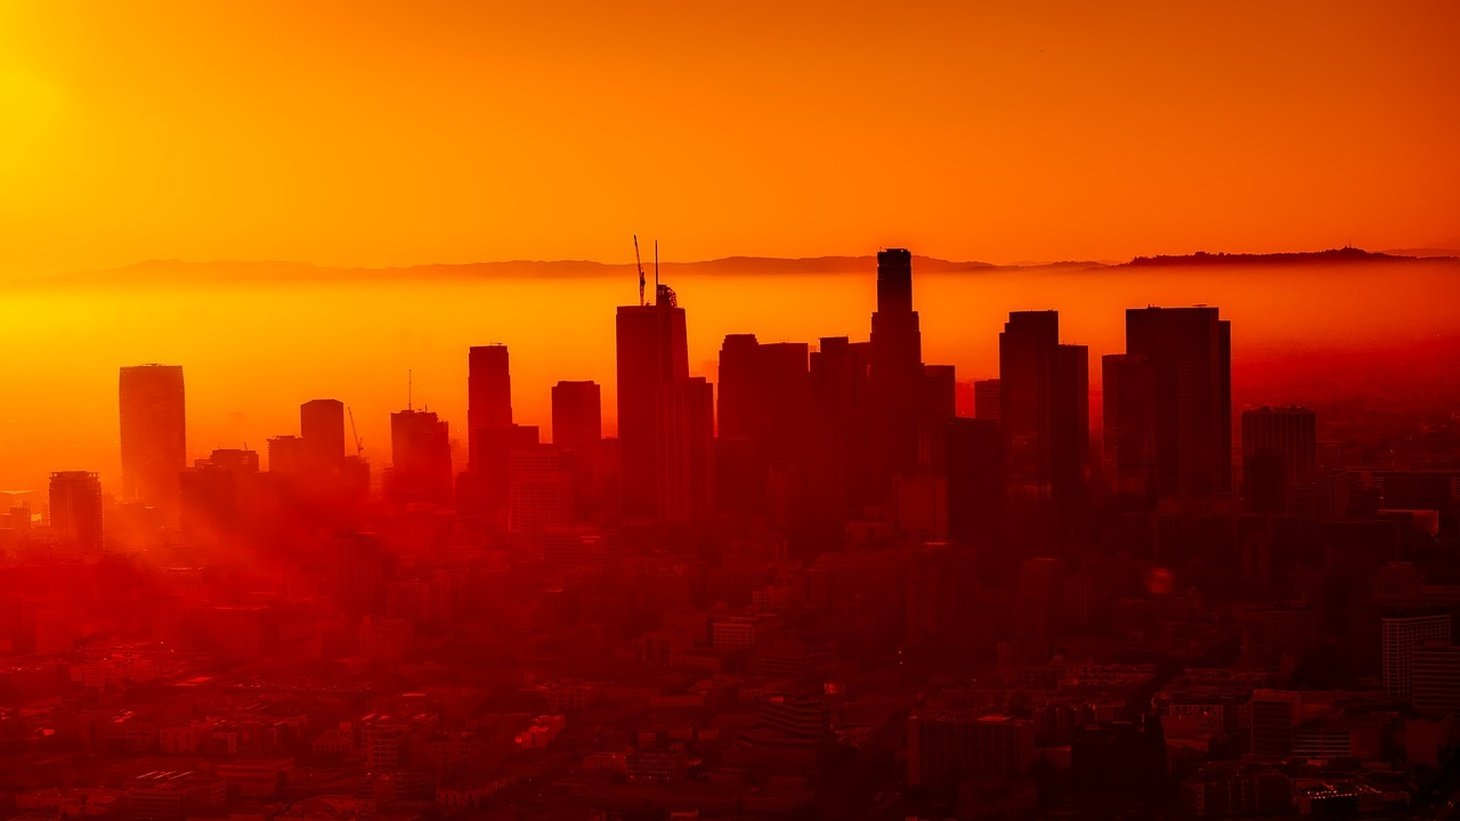 alex hall on kcrw's greater la: how climate change will affect southern california